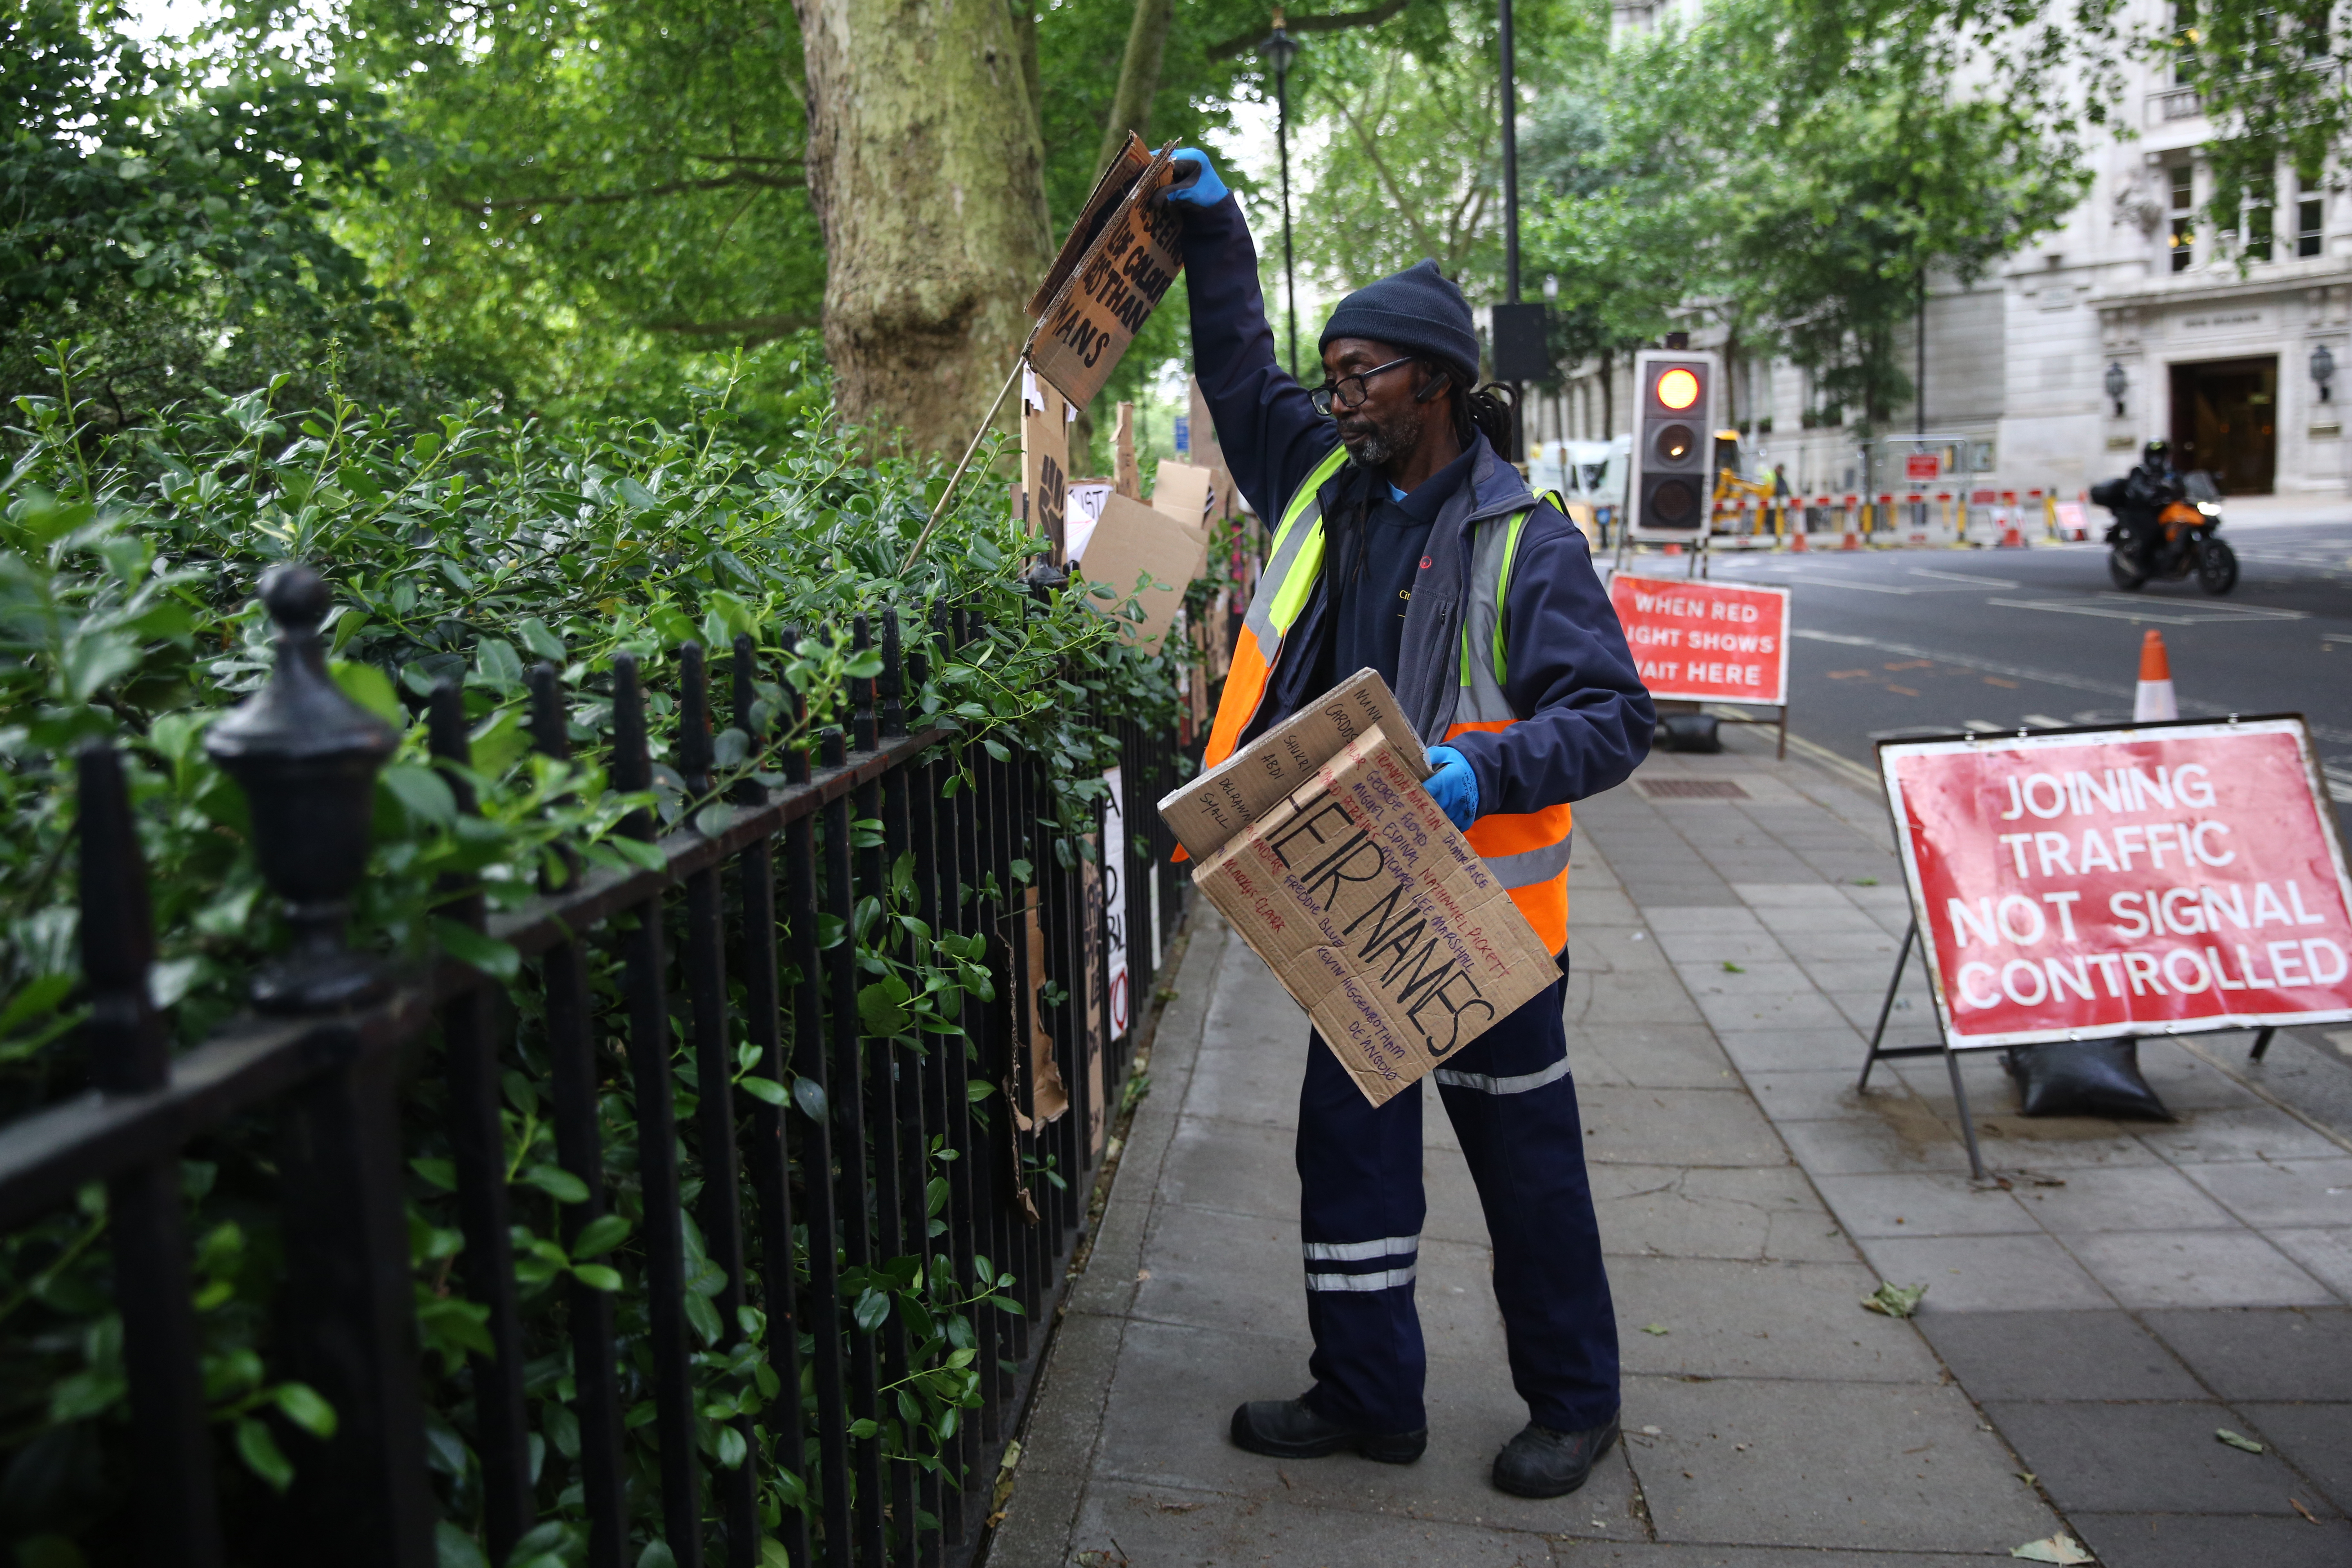 A worker collects discarded placards from Victoria Tower Gardens in Westminster, London, following a Black Lives Matter protest at the weekend. A raft of protests across the UK were sparked by the death of George Floyd, who was killed on May 25 while in police custody in the US city of Minneapolis.